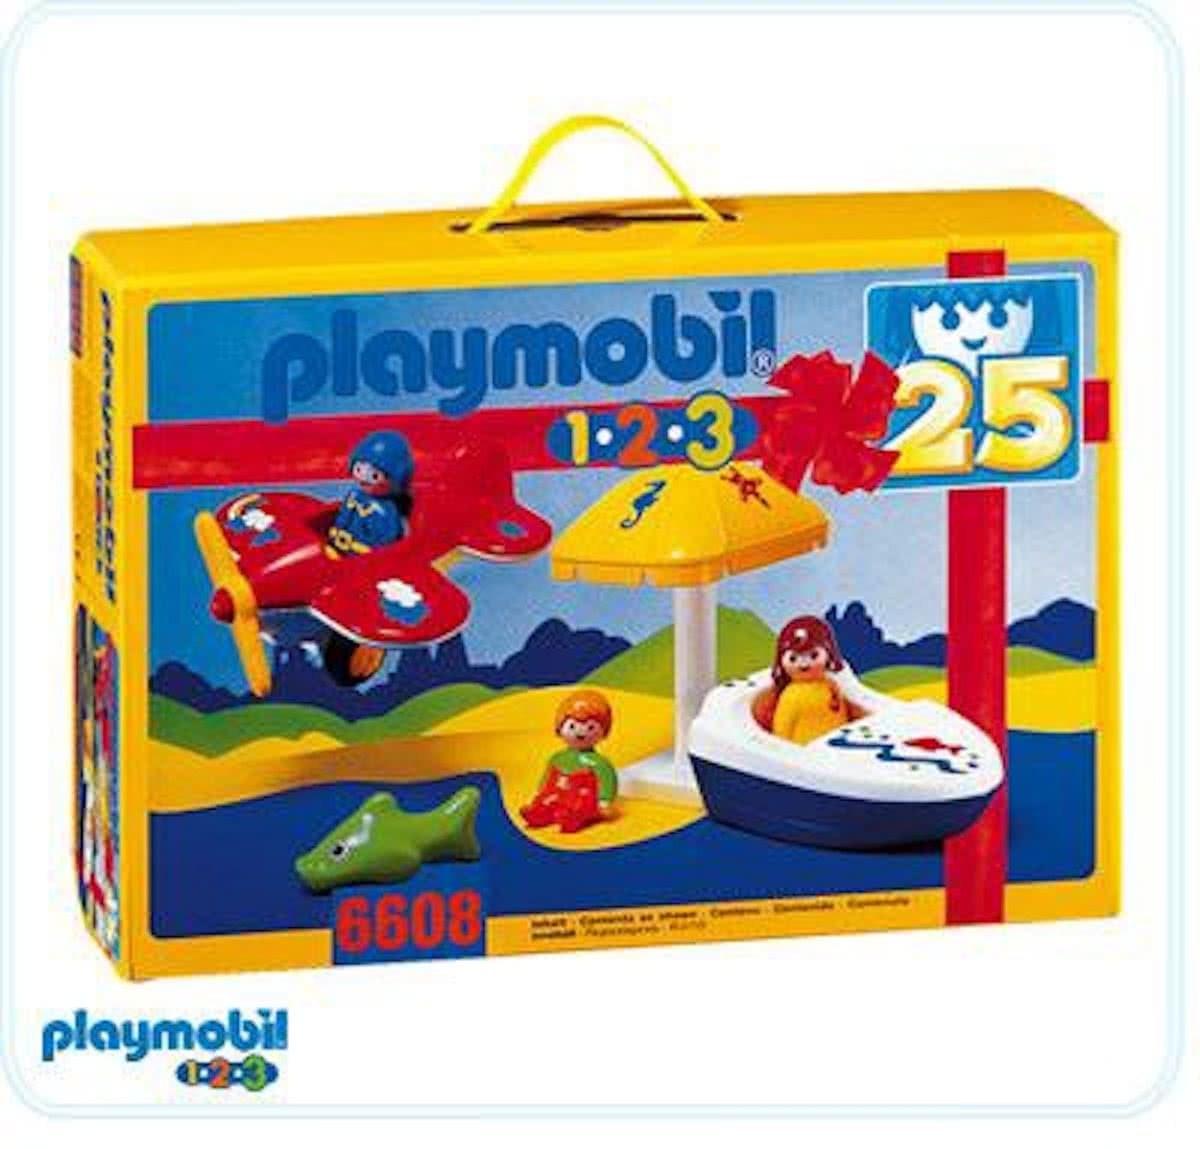 Playmobil Beach Set Parts Only - 6608